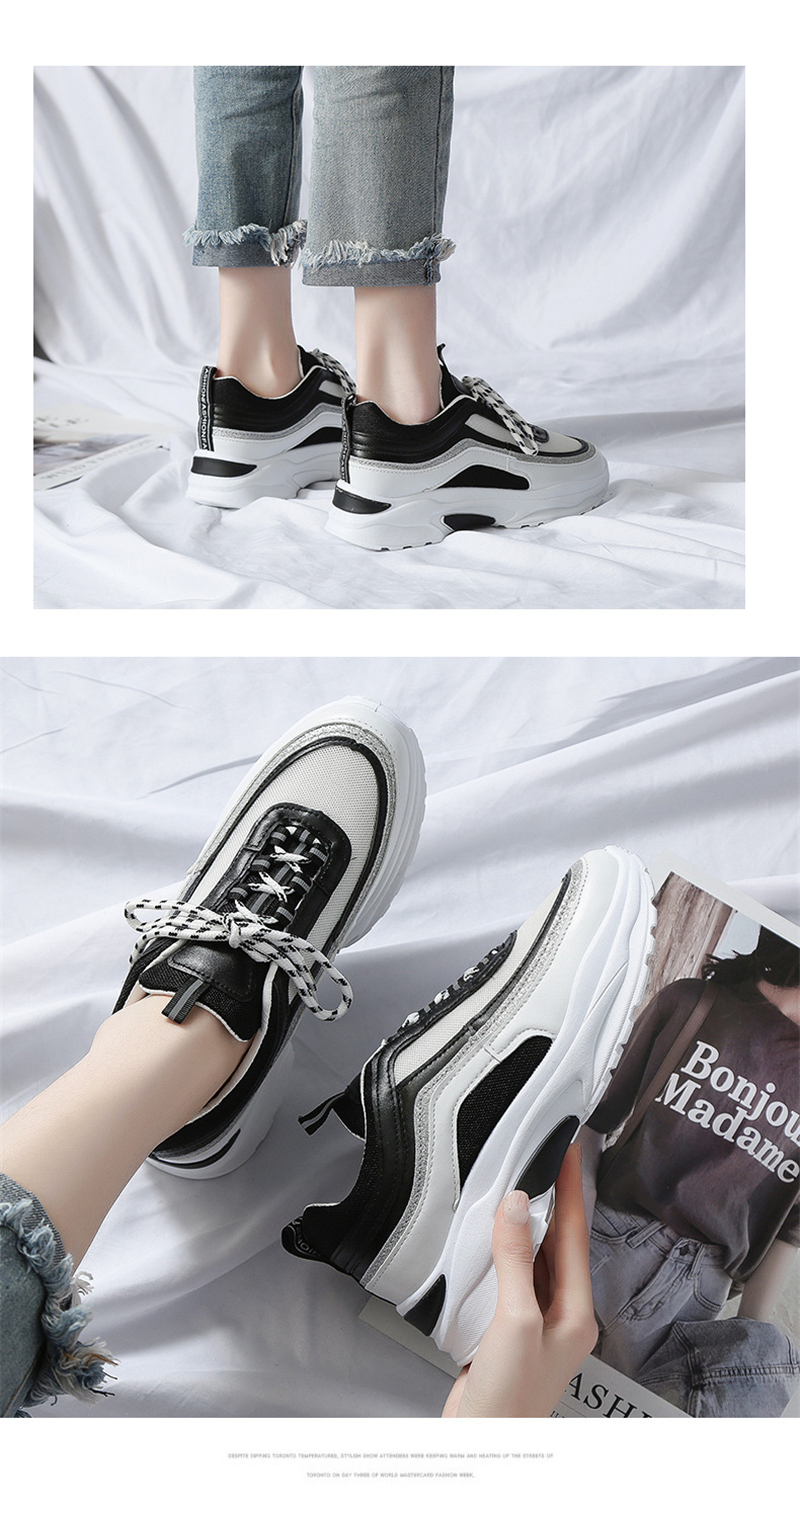 Spring Summer New Fashion Women's Vulcanize Shoes Casual Platform Increased Women Shoes Sneakers Casual Shoes Women VT611 (8)